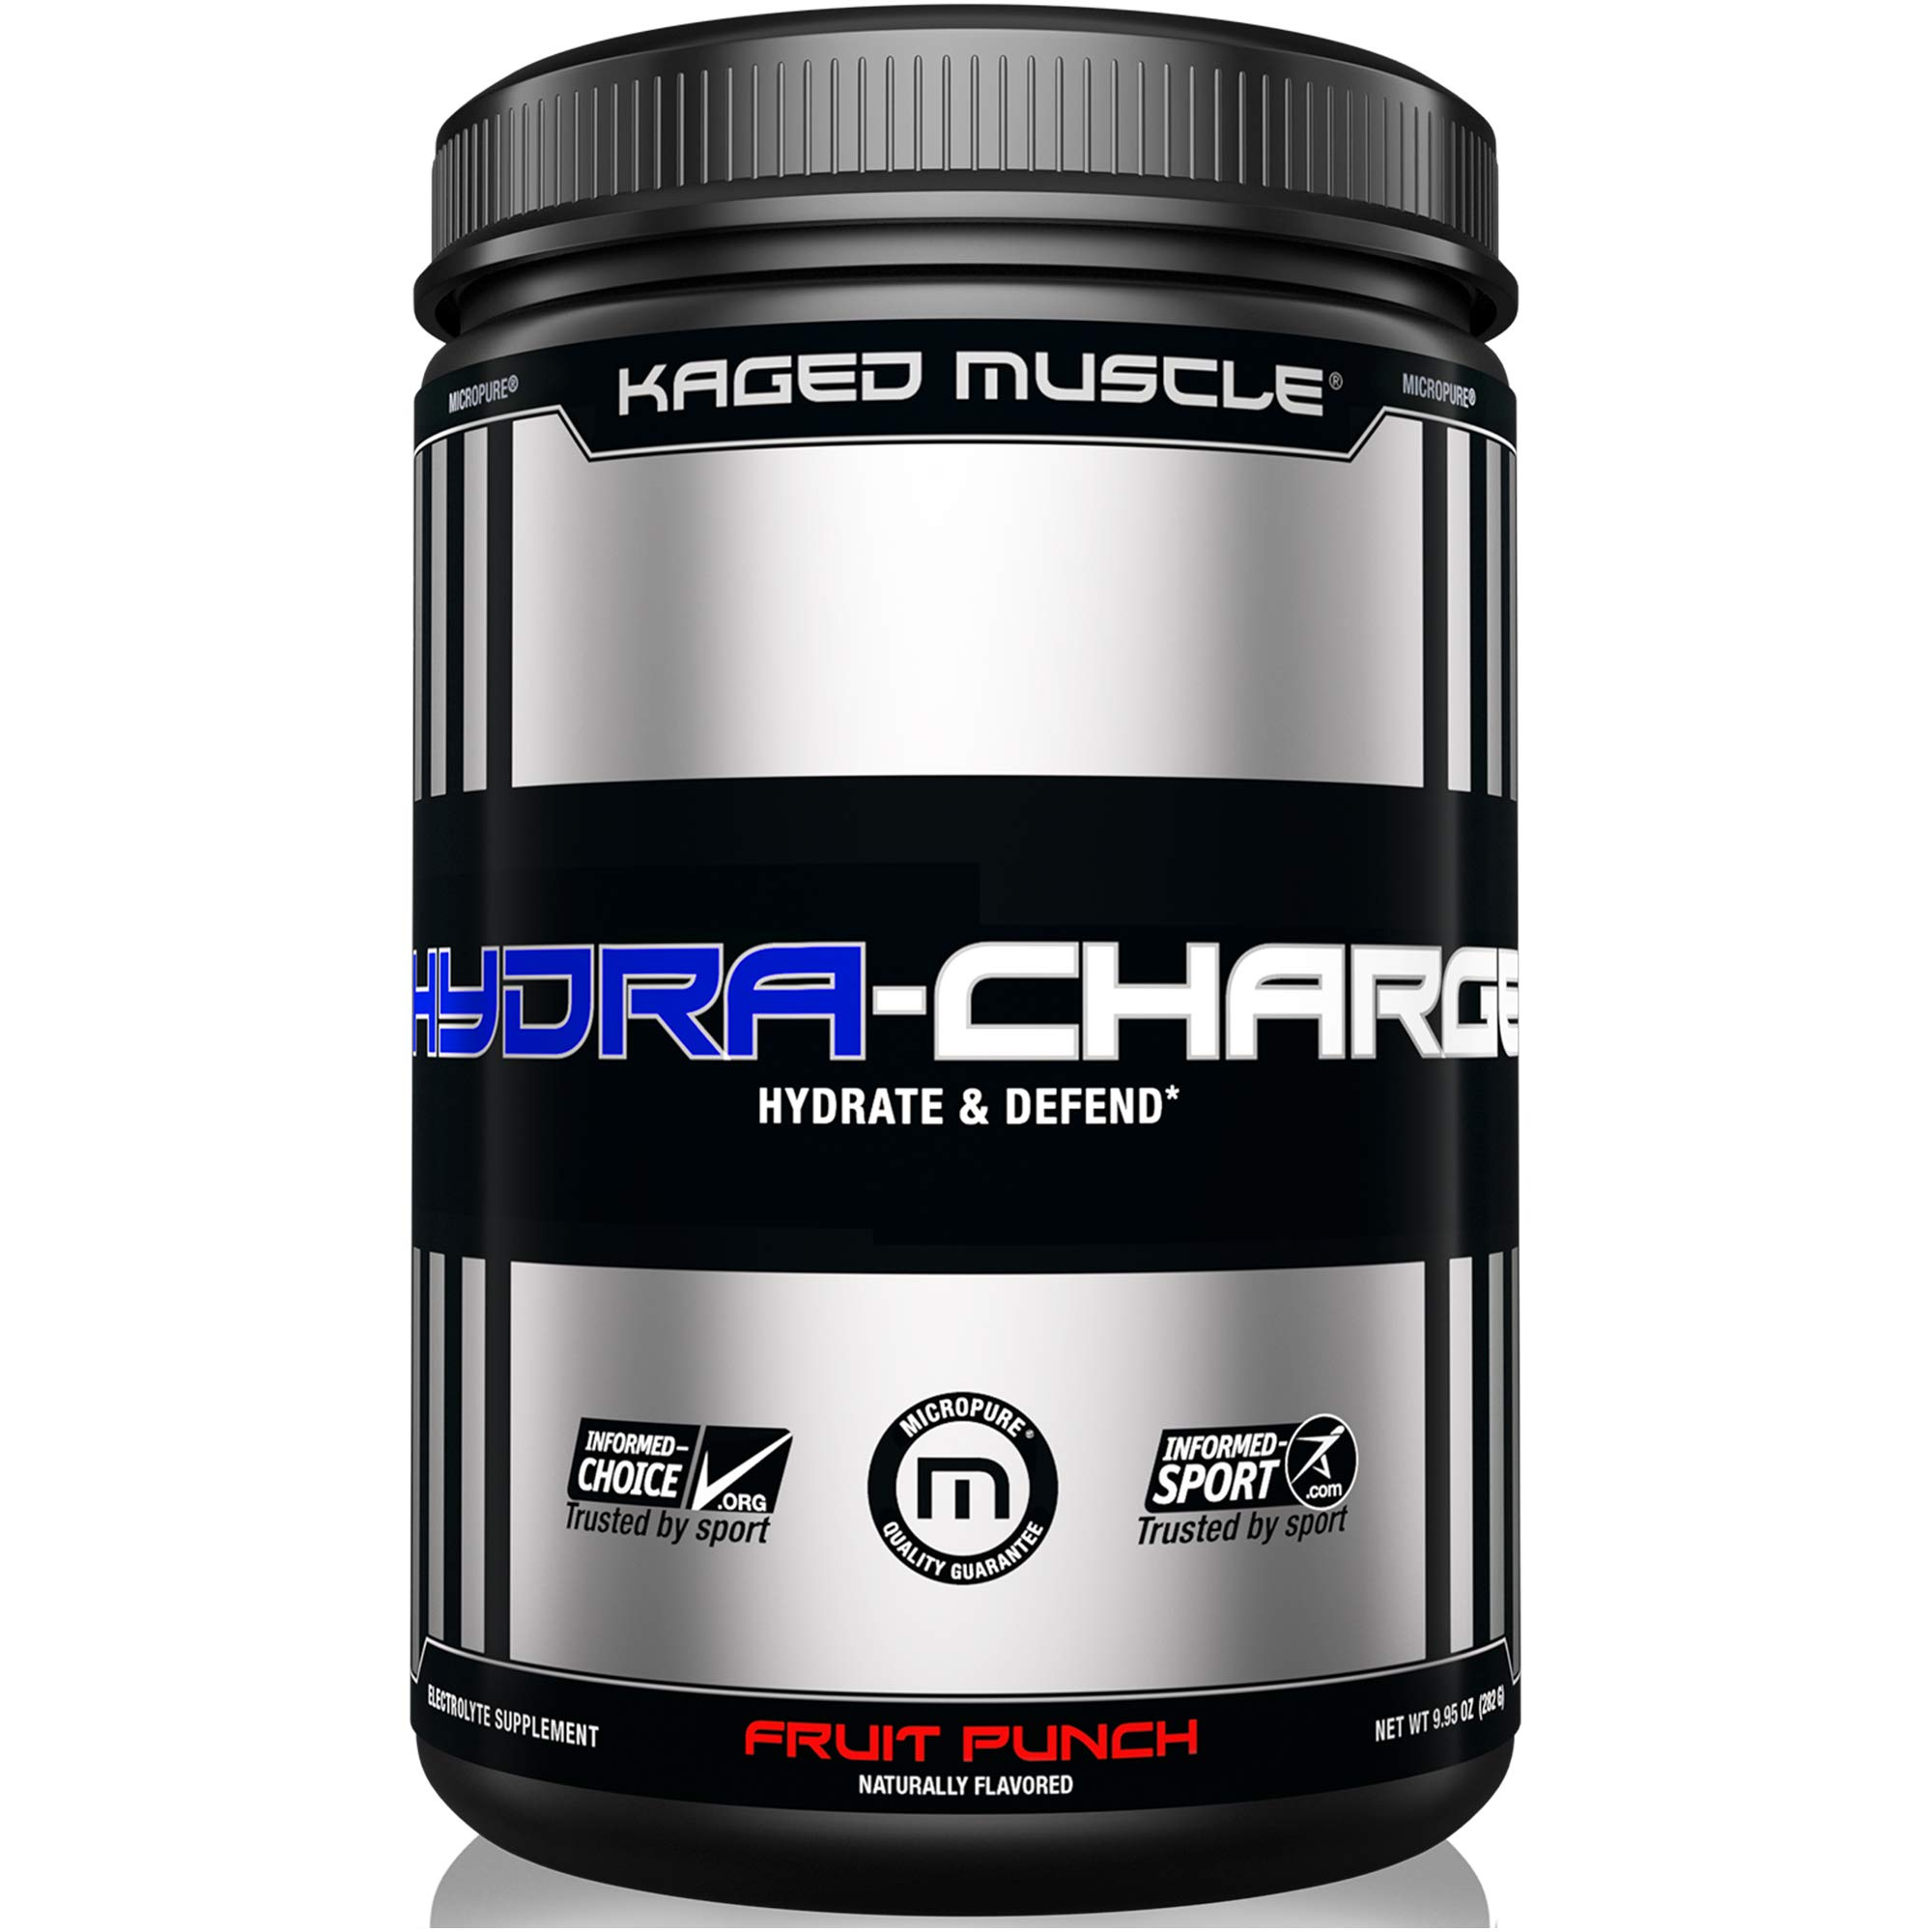 KAGED MUSCLE, HYDRA CHARGE Premium Electrolyte Powder, Hydrate, Pre Workout, Post Workout, Intra Workout, Fruit Punch, 60 Servings by Kaged Muscle